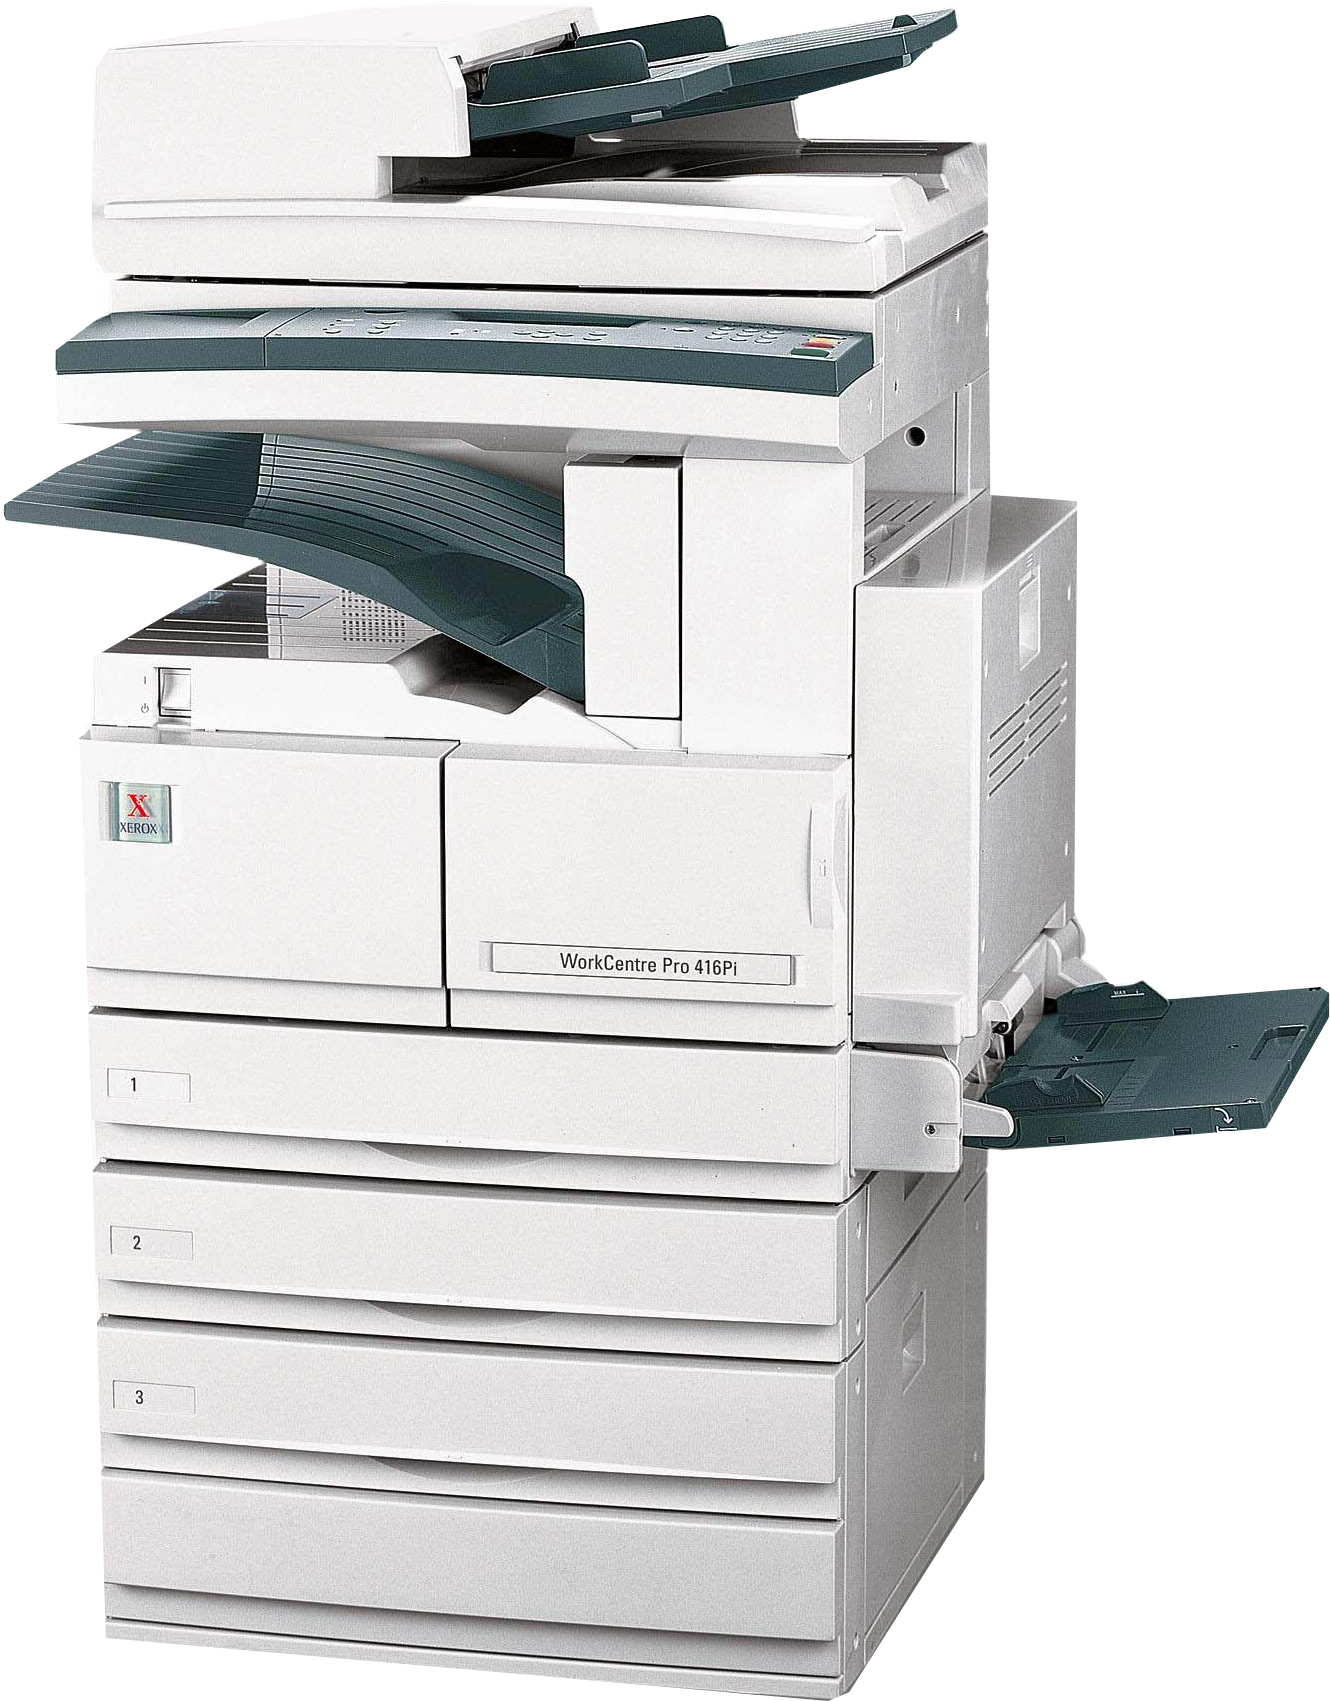 Best Deals On Business Copier Machines House Plans How To